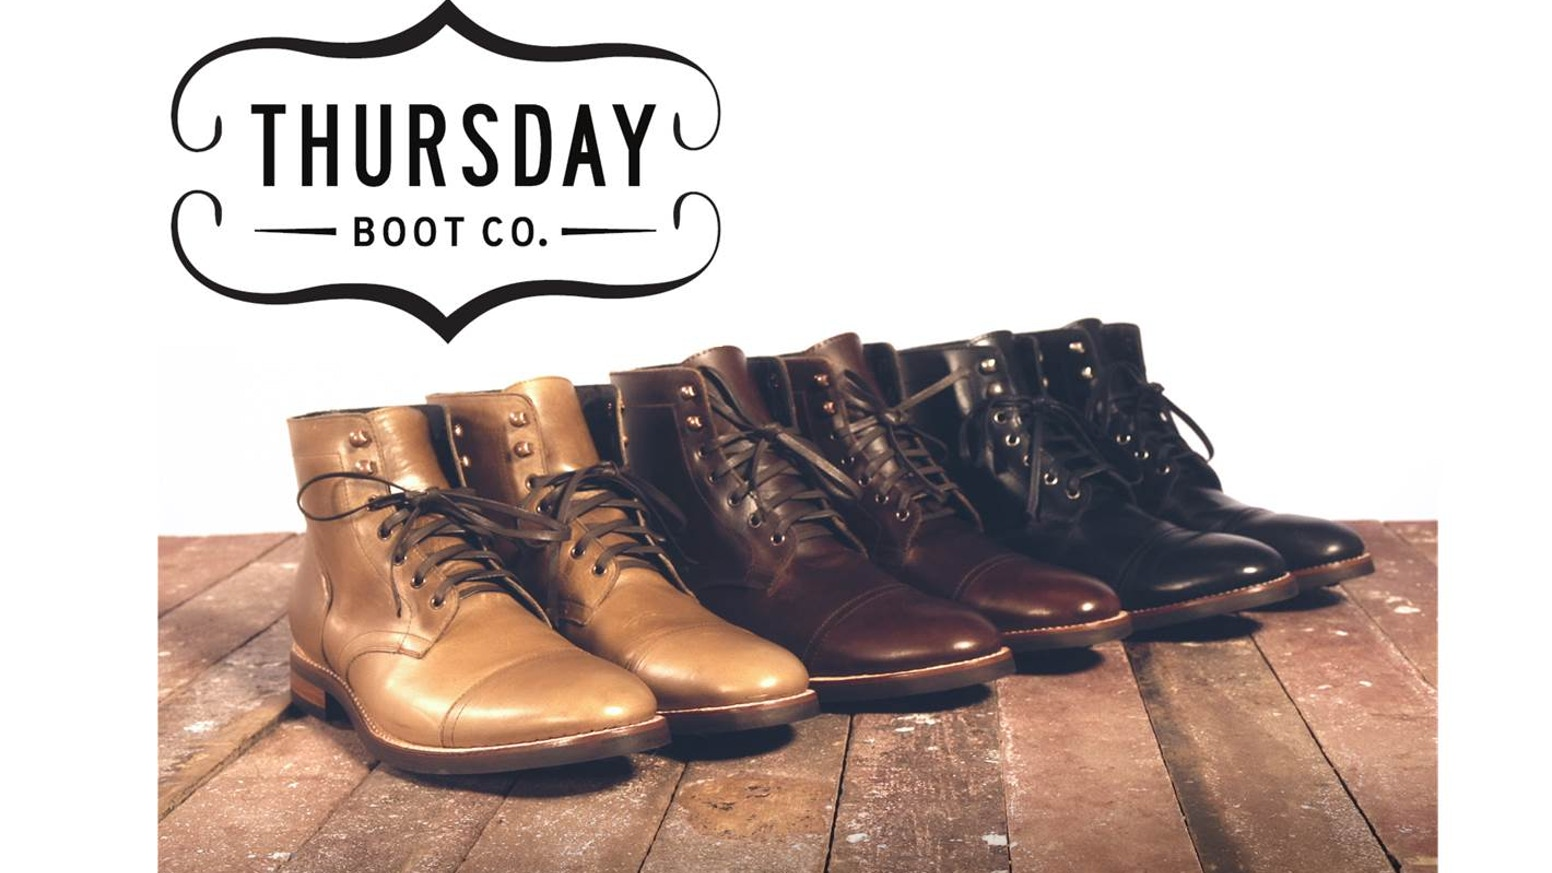 Durable and sophisticated boots that are perfect for work and play.